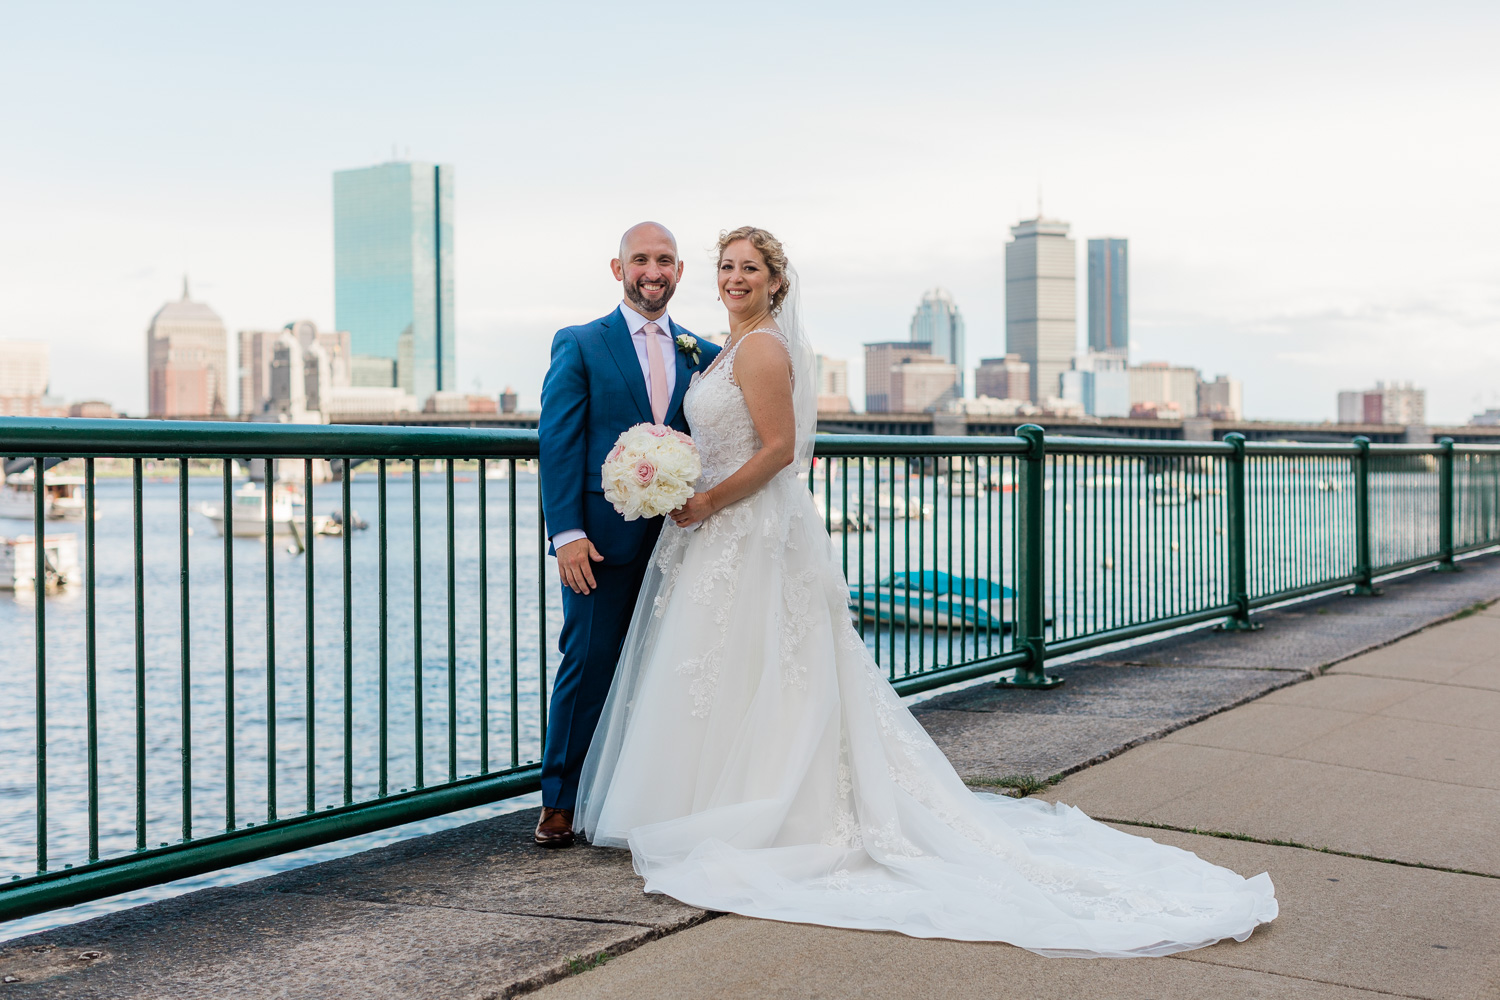 Royal Sonesta Overlooking Boston Wedding